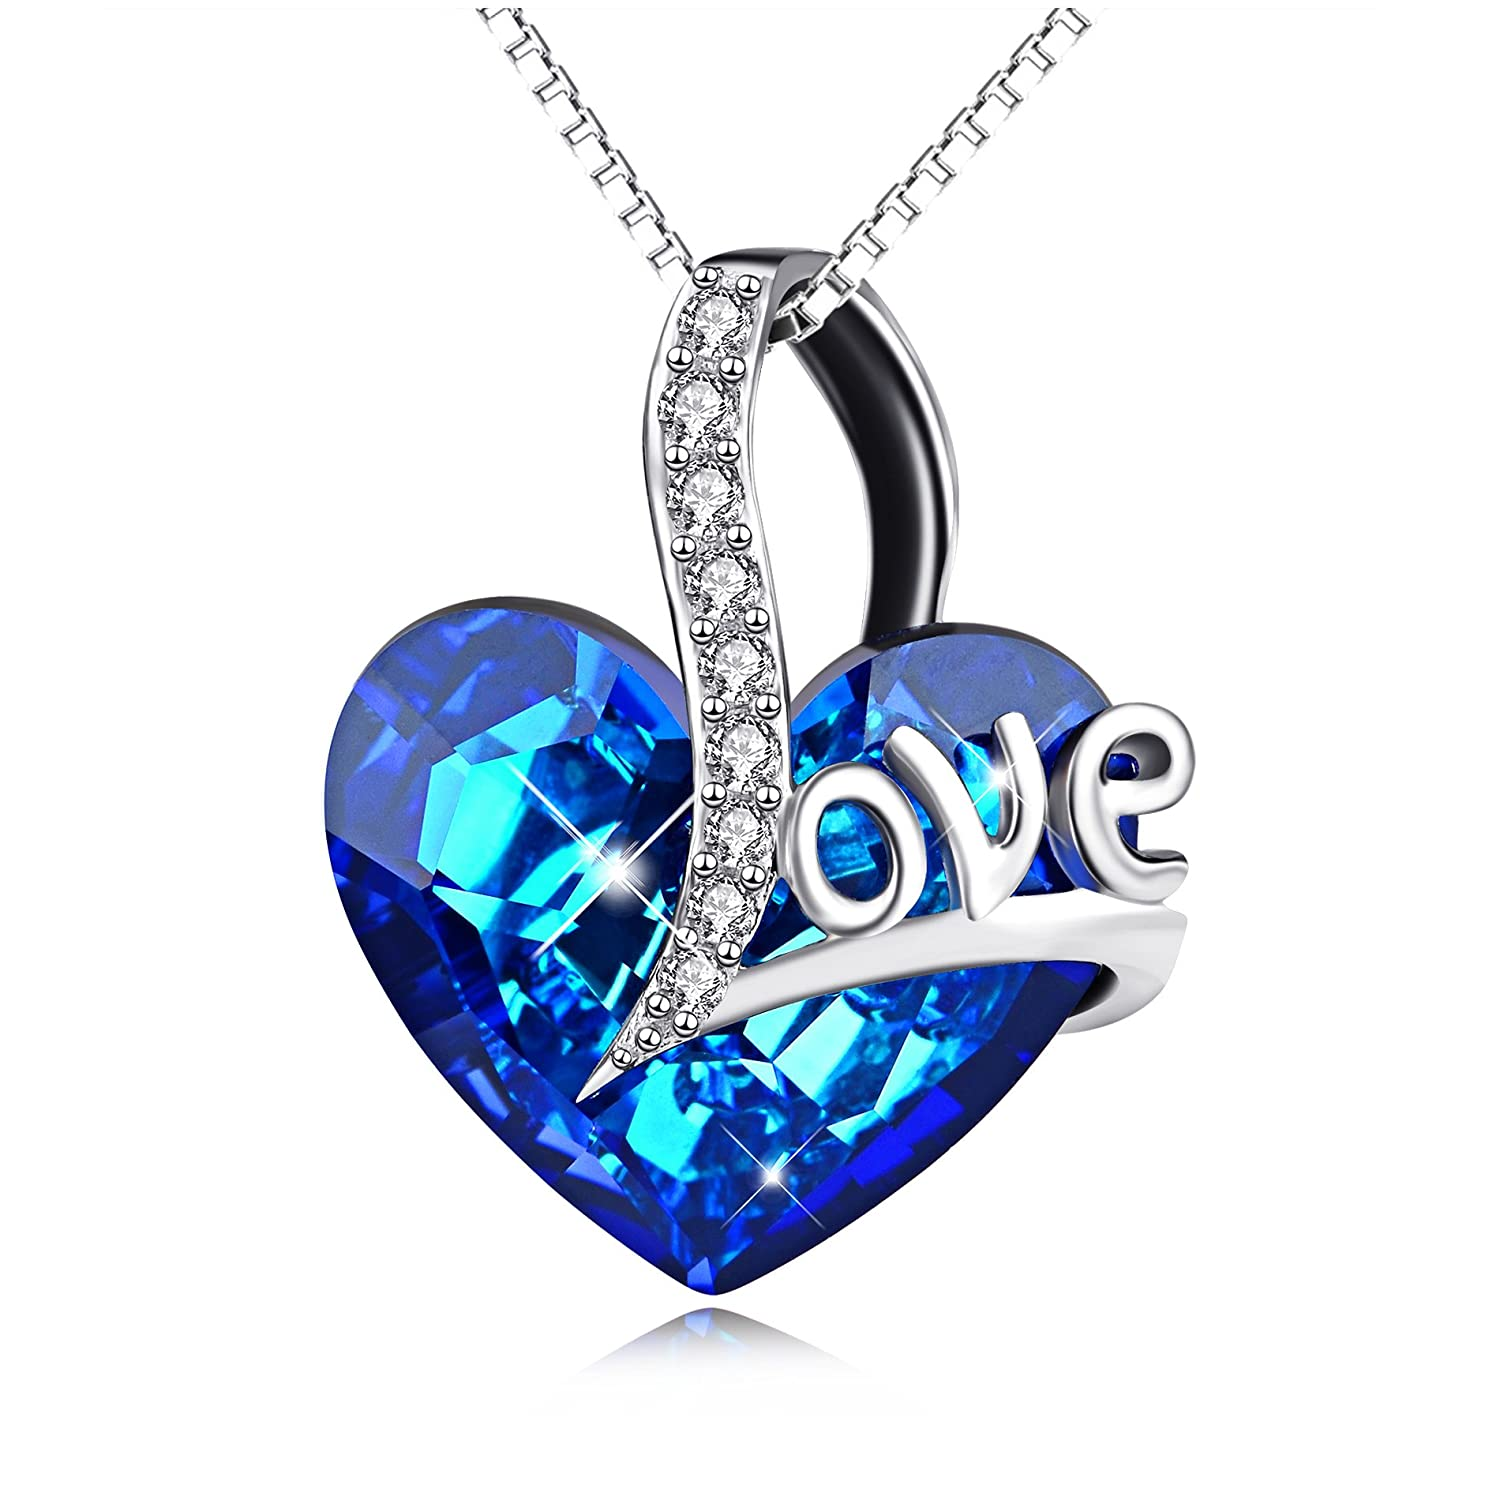 AOBOCO 925 Sterling Silver Heart Necklace ♥Jewelry Gifts for Women♥ Crystals from Swarovski, Jewelry with Gifts Package